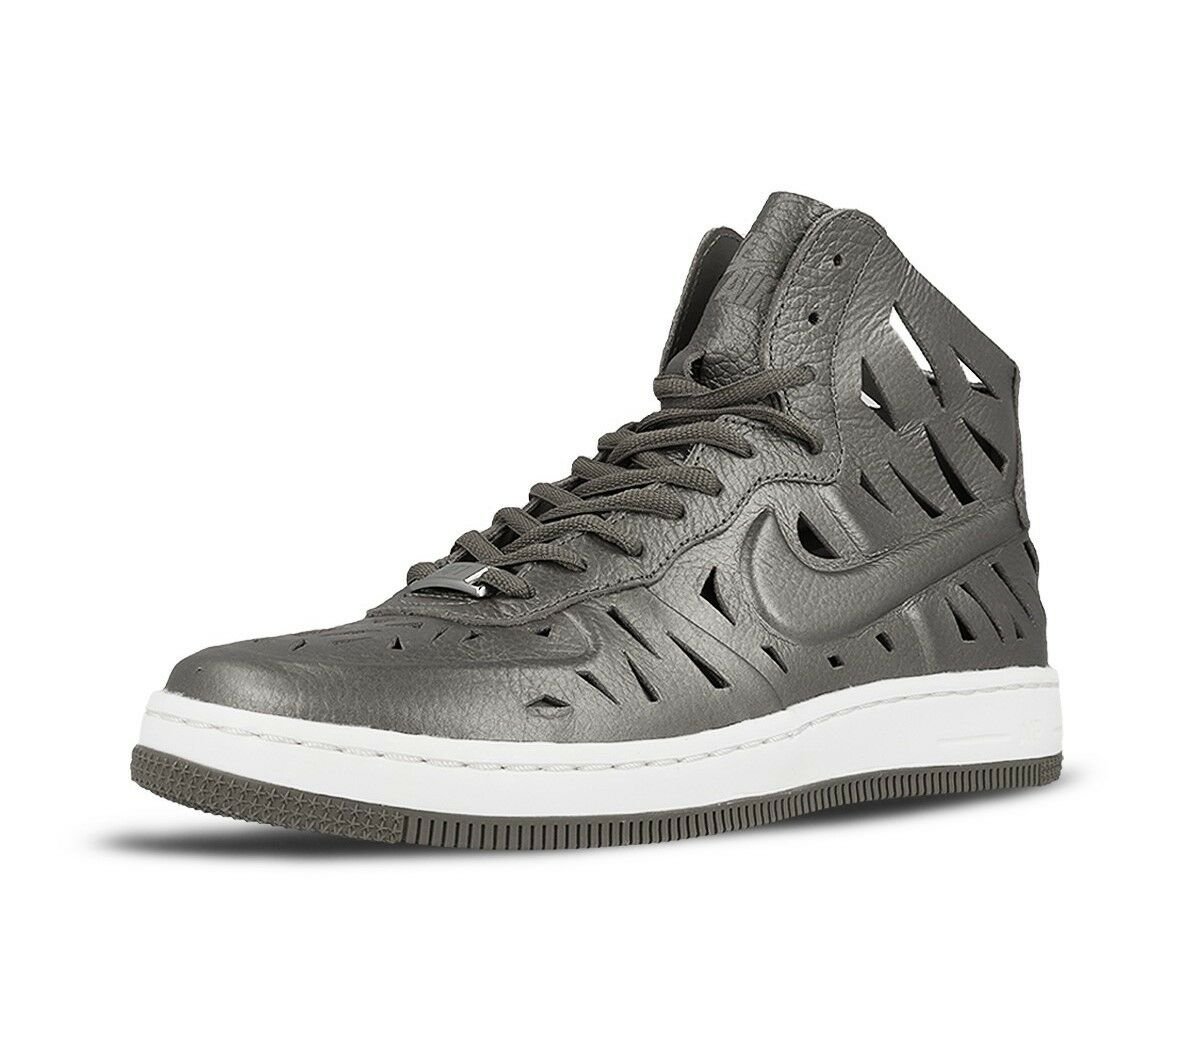 Nike Wmns Mid Air Force 1 Ultra Force Mid Wmns Joli 725075-002 Talla 8.5 Reino Unido 2c37a4